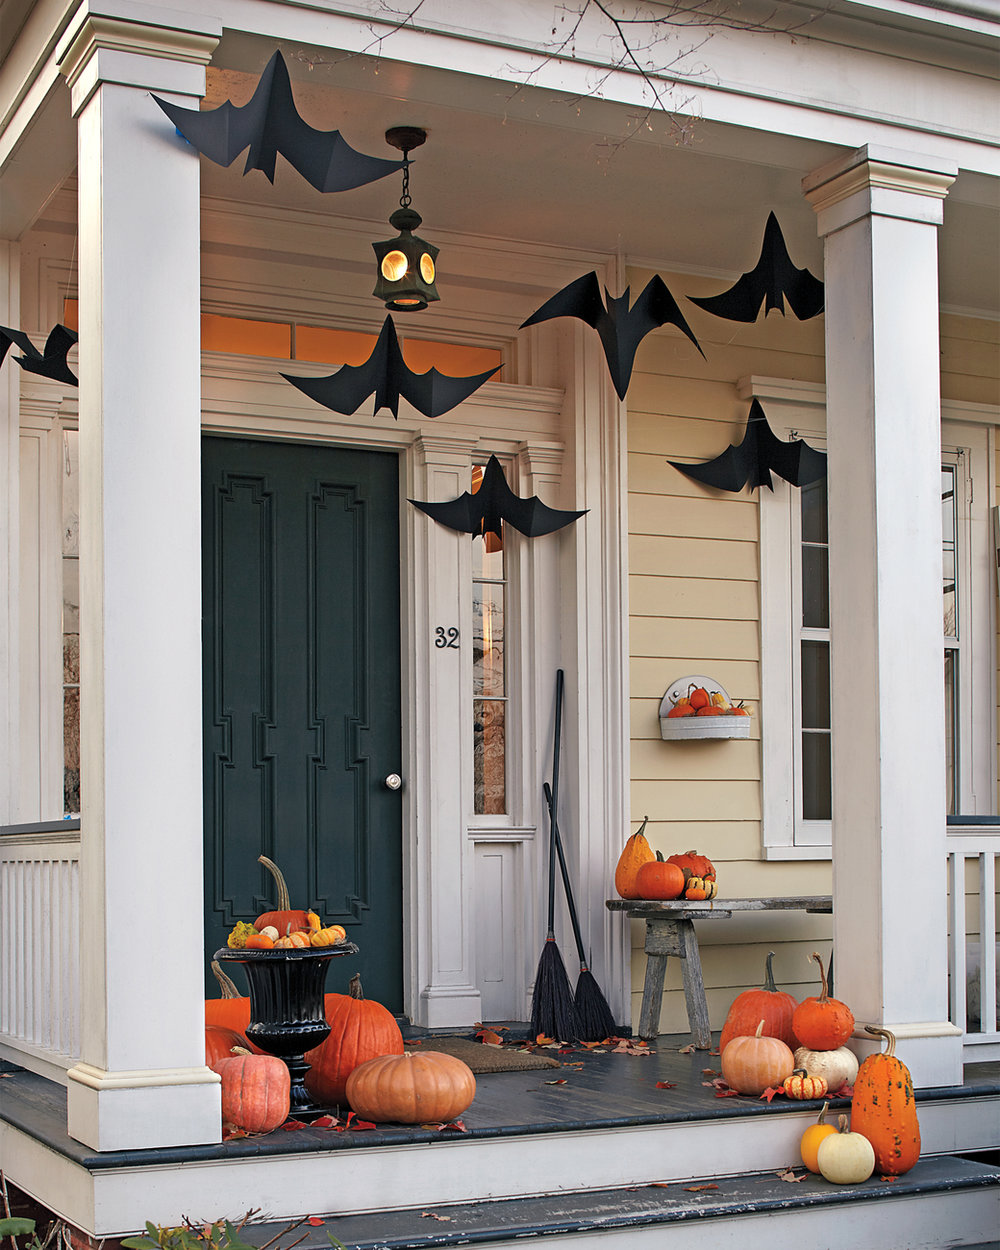 Paper bats hung from the ceiling for Halloween from Martha Stewart | asavvylifestyle.com